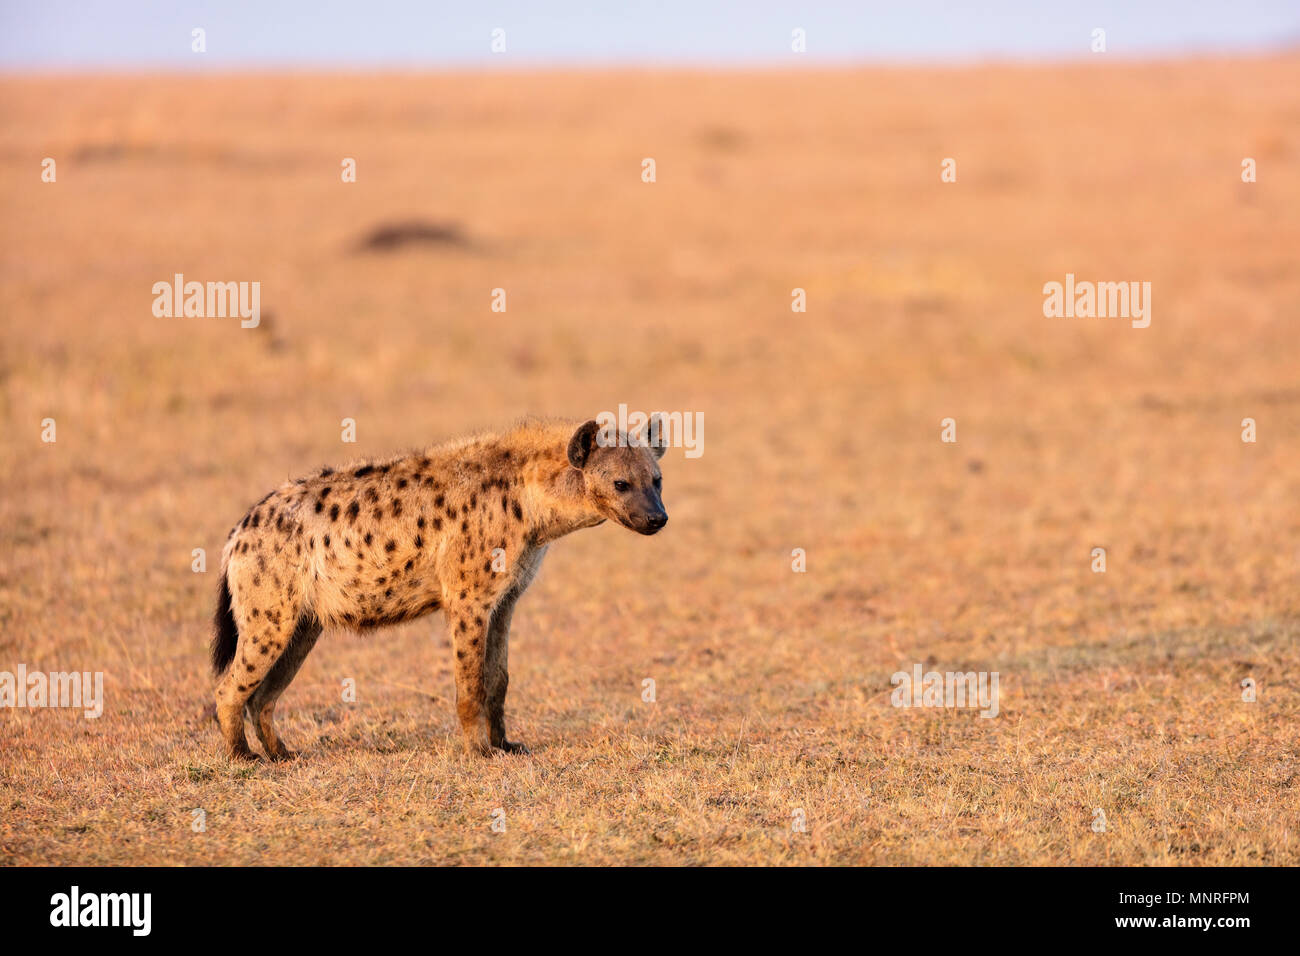 Hyena in safari park in Kenya - Stock Image